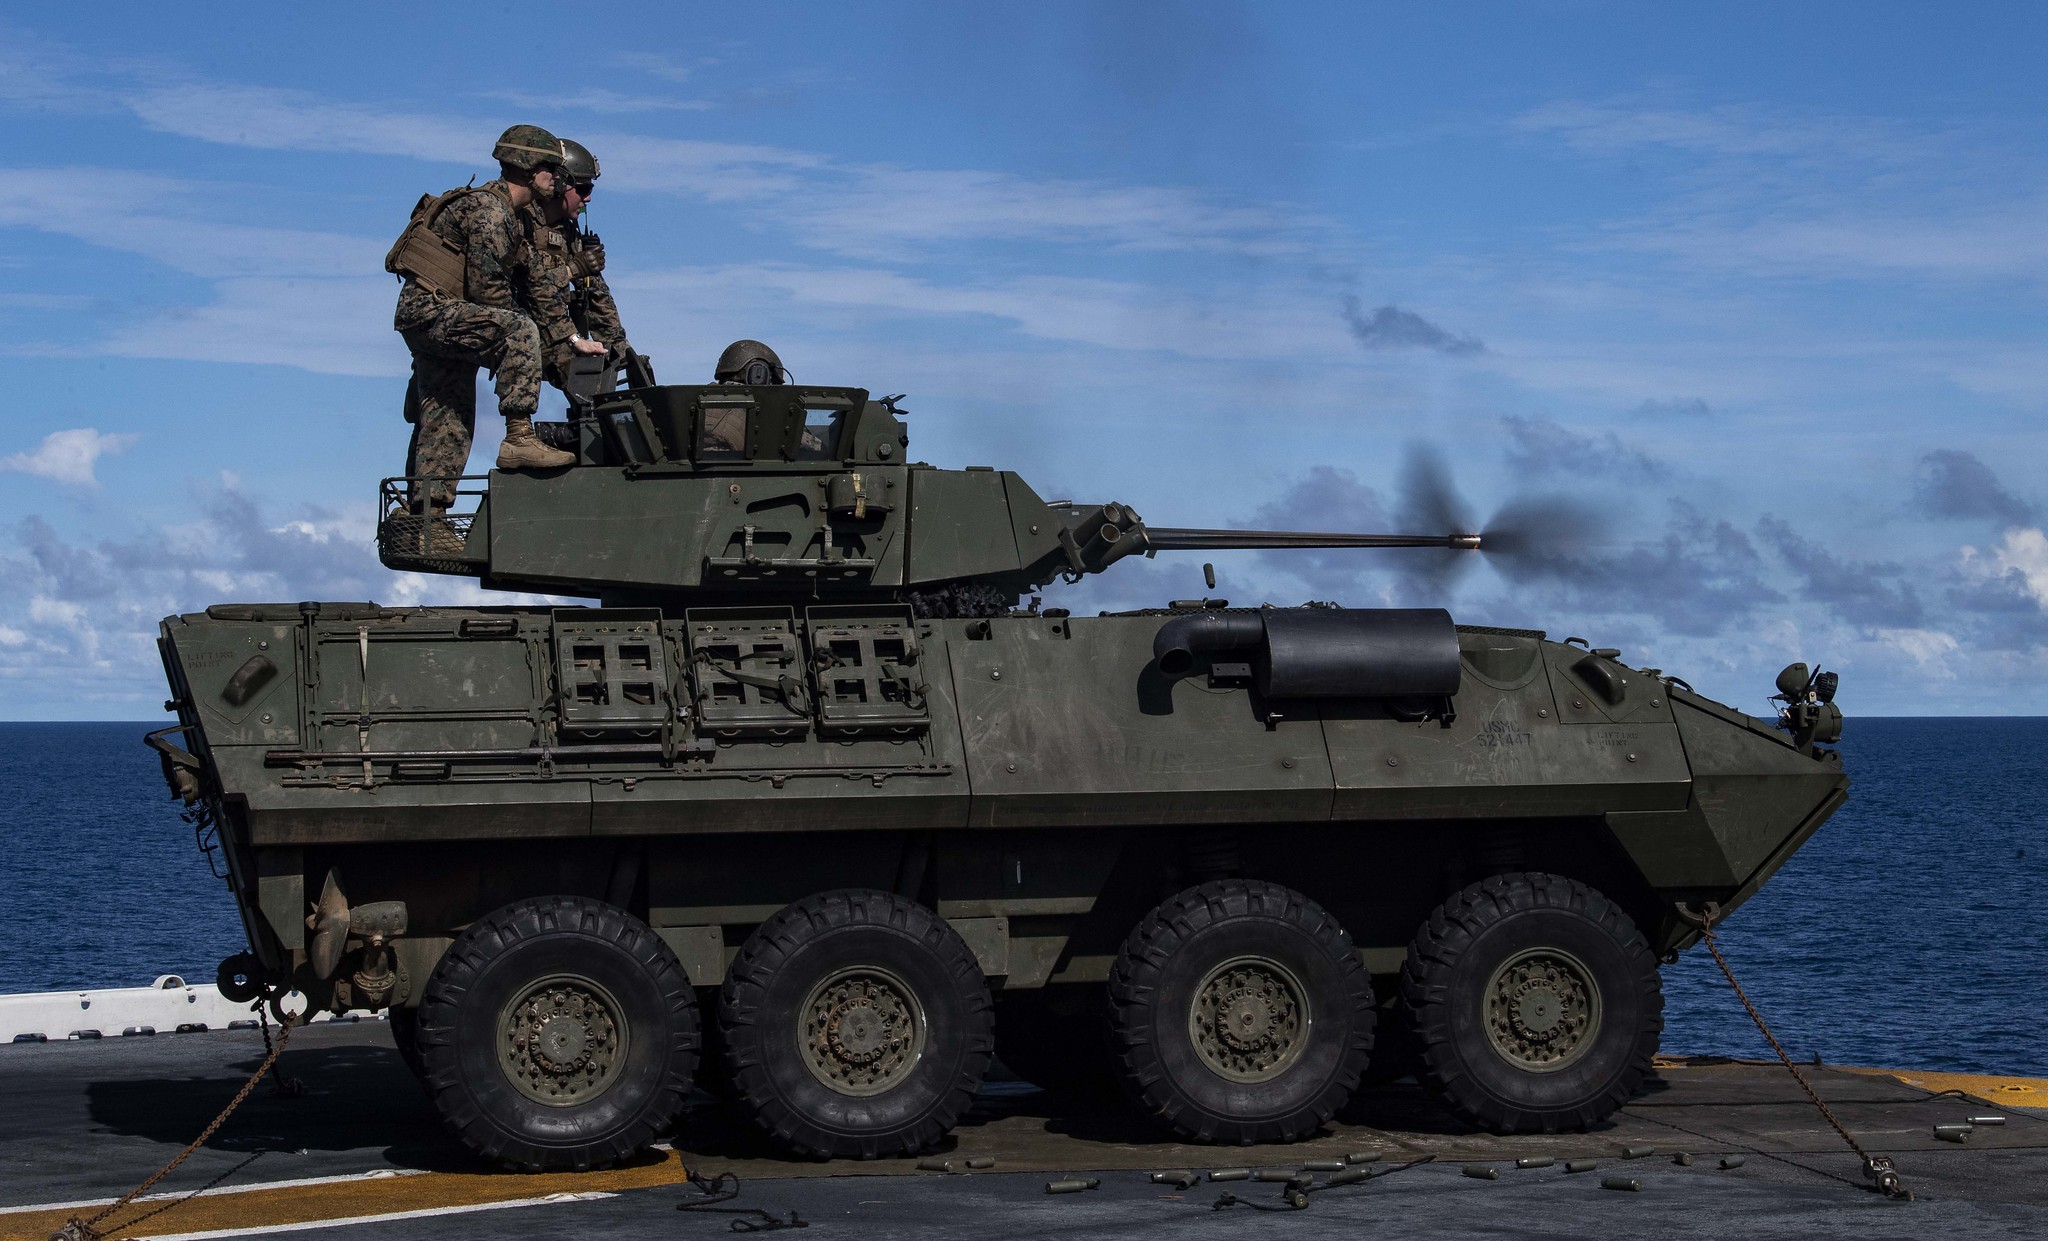 Marines fire a Light Armored Vehicle (LAV) M242 Bushmaster 25mm chain gun during a drill aboard the amphibious assault ship USS Wasp (LHD 1) Aug. 7, 2019, in the Pacific Ocean. (Mass Communication Specialist 1st Class Jeremy Starr/Navy)